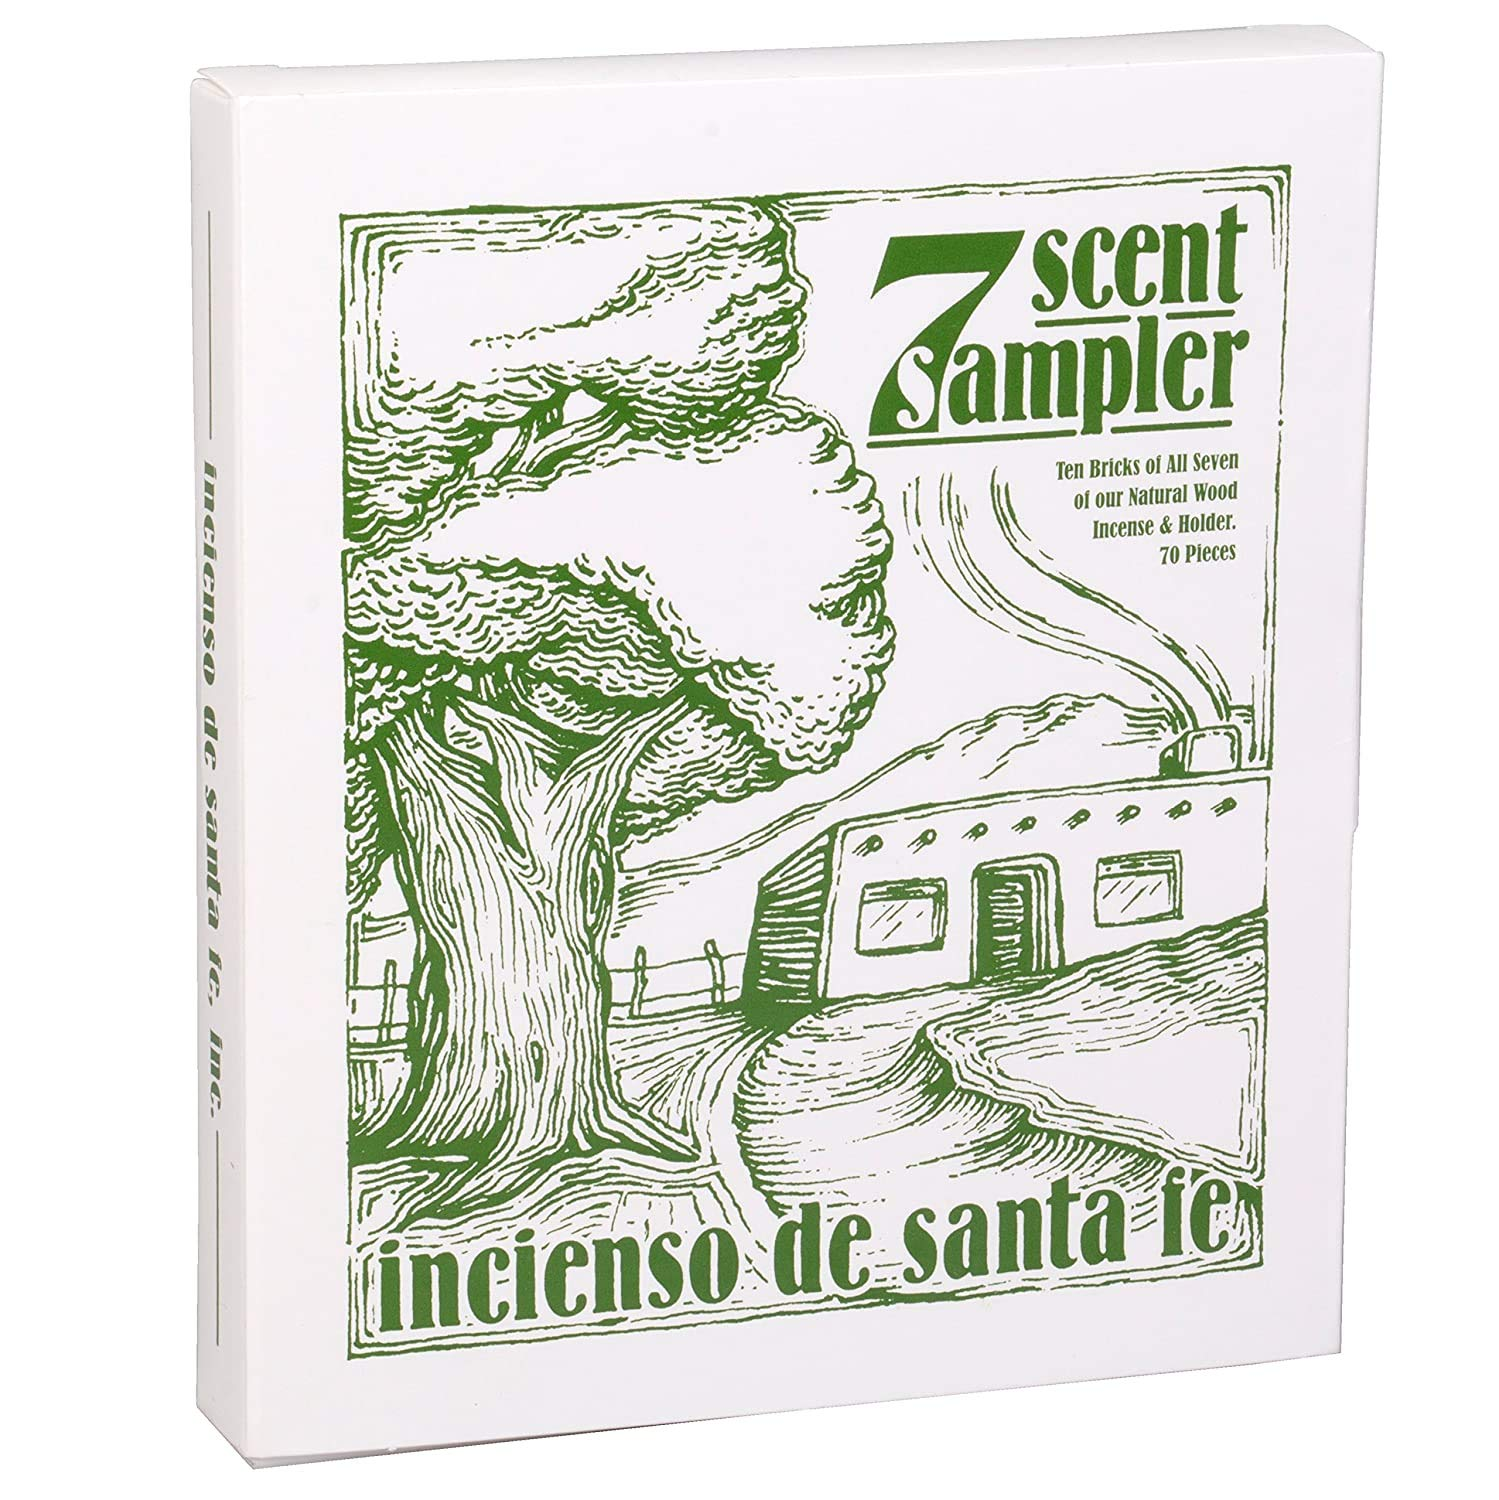 Incienso de Santa Fe - 7 Scent Sampler Natural Wood Incense with Burner, Includes Piñon, Cedar, Juniper, Hickory, Alder, Mesquite and Fir Balsam (70 Bricks)